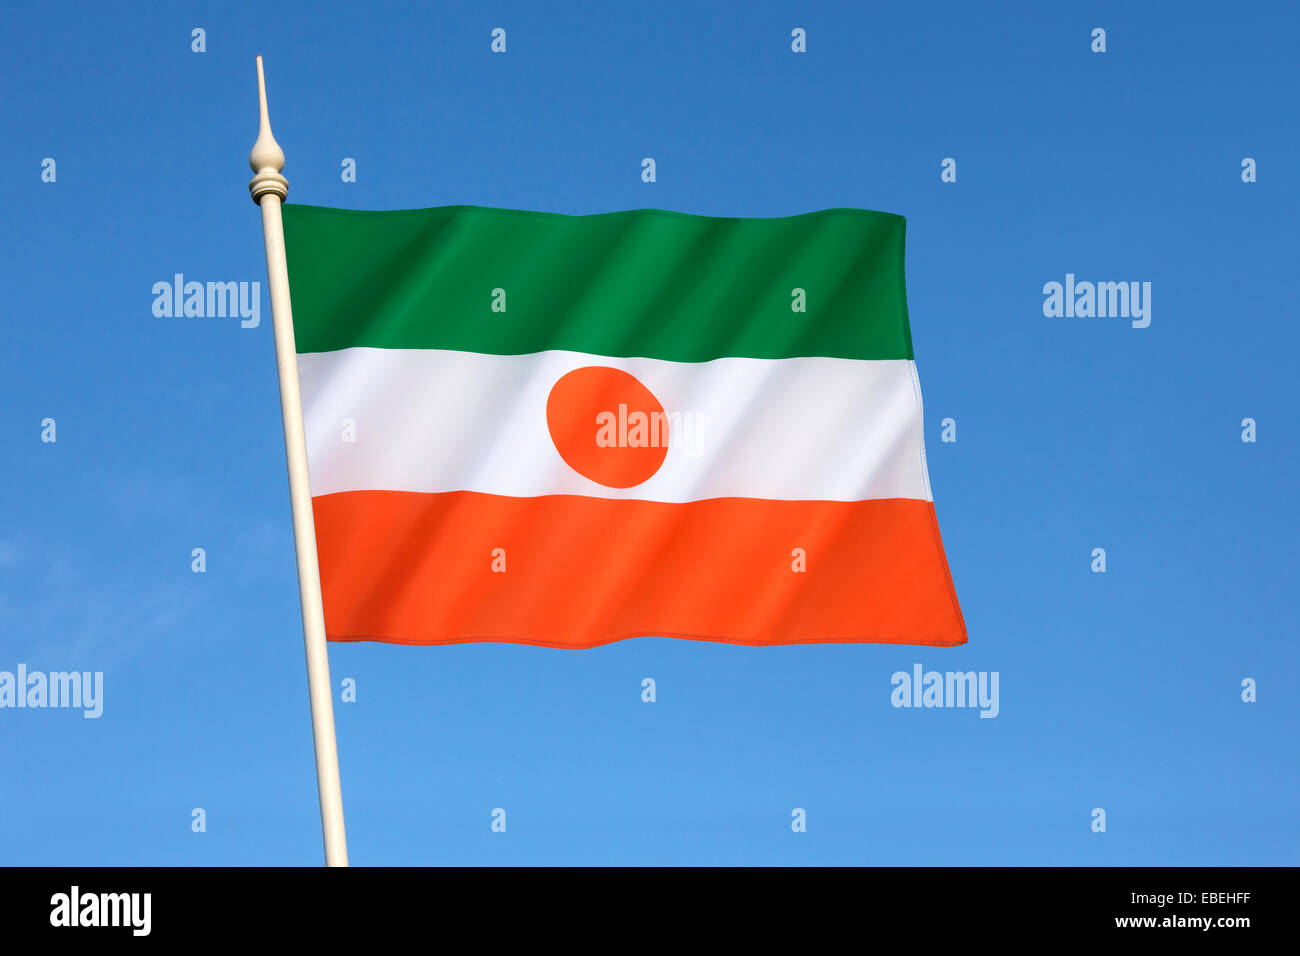 Flag of Niger - Stock Image